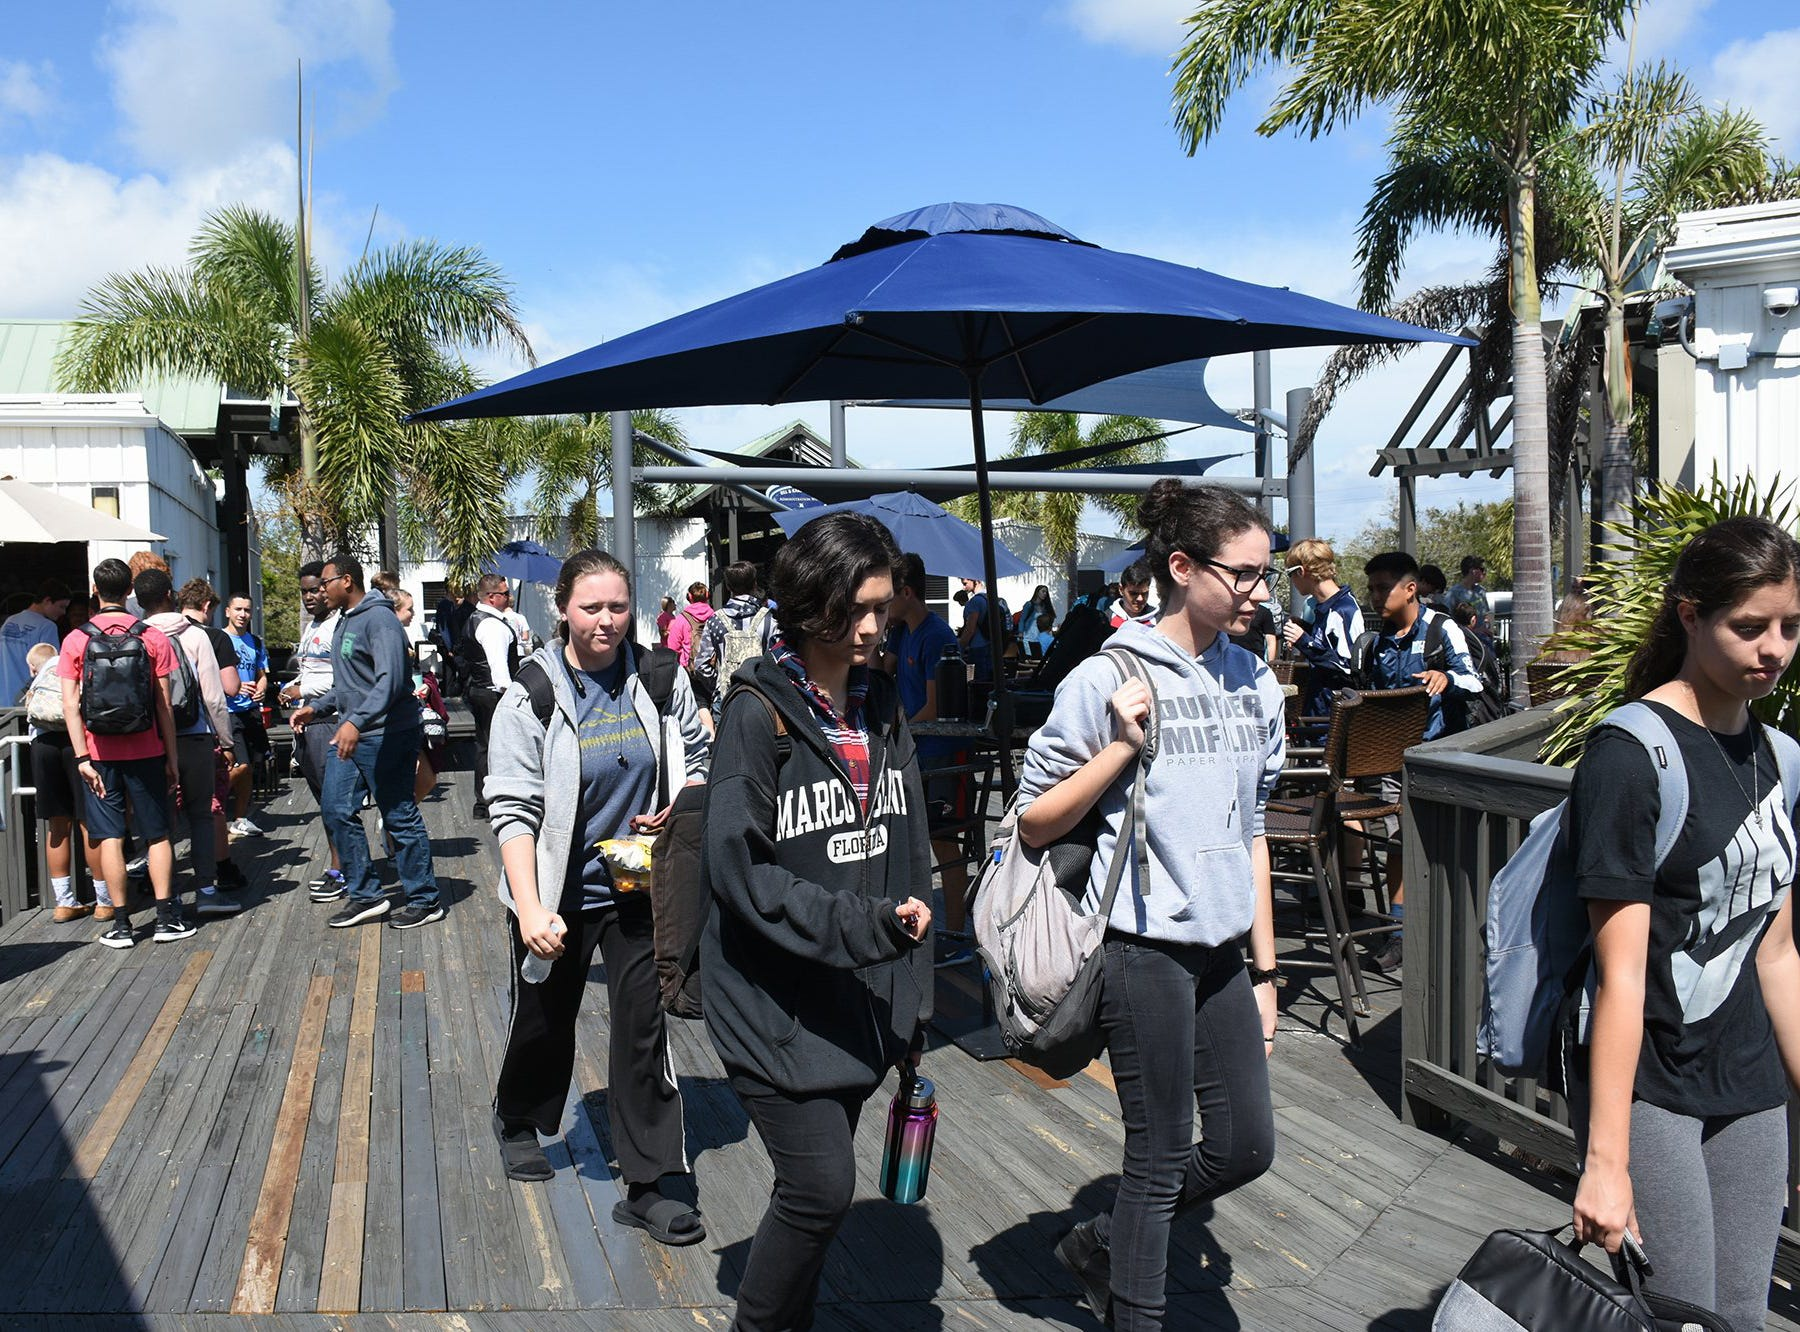 Students head to classes on the rickety wooden deck. Marco Island Academy is embarking on a capital campaign to raise millions of dollars and give the school a permanent home, after years of operating in prefab modules.